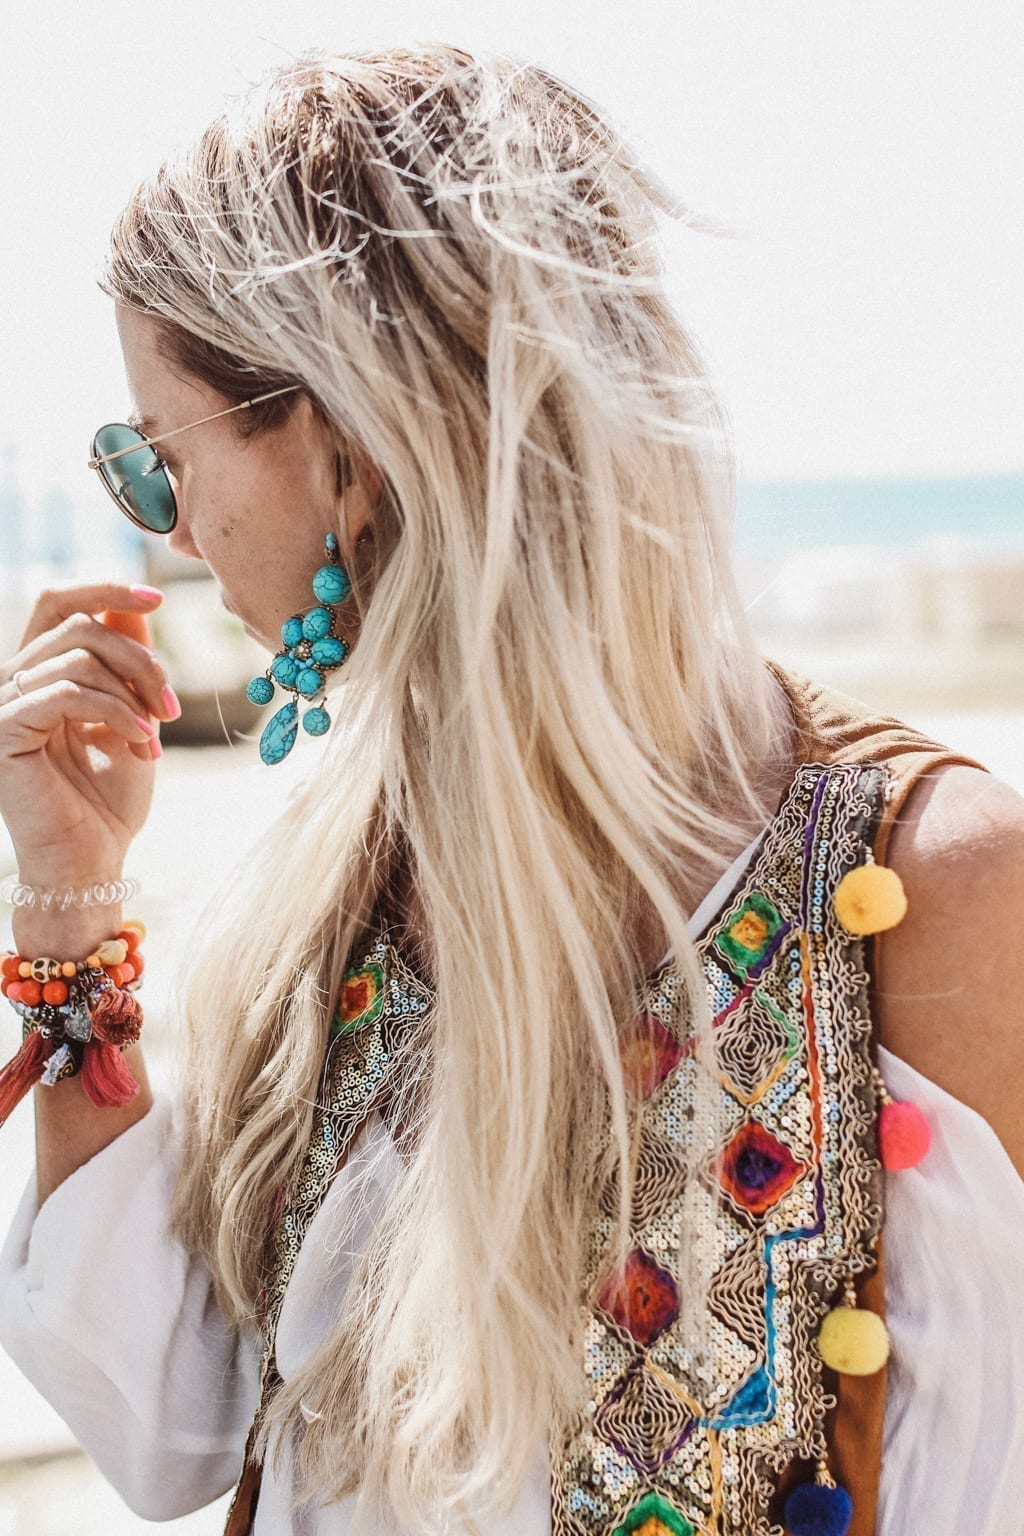 CK1605_Constantly-K-Karin-Kaswurm-Georg-Teigl-Ibiza-Holiday-Spain-Blog-Street-Style-Fashion-Boho-Chic-Beach-Style-7747